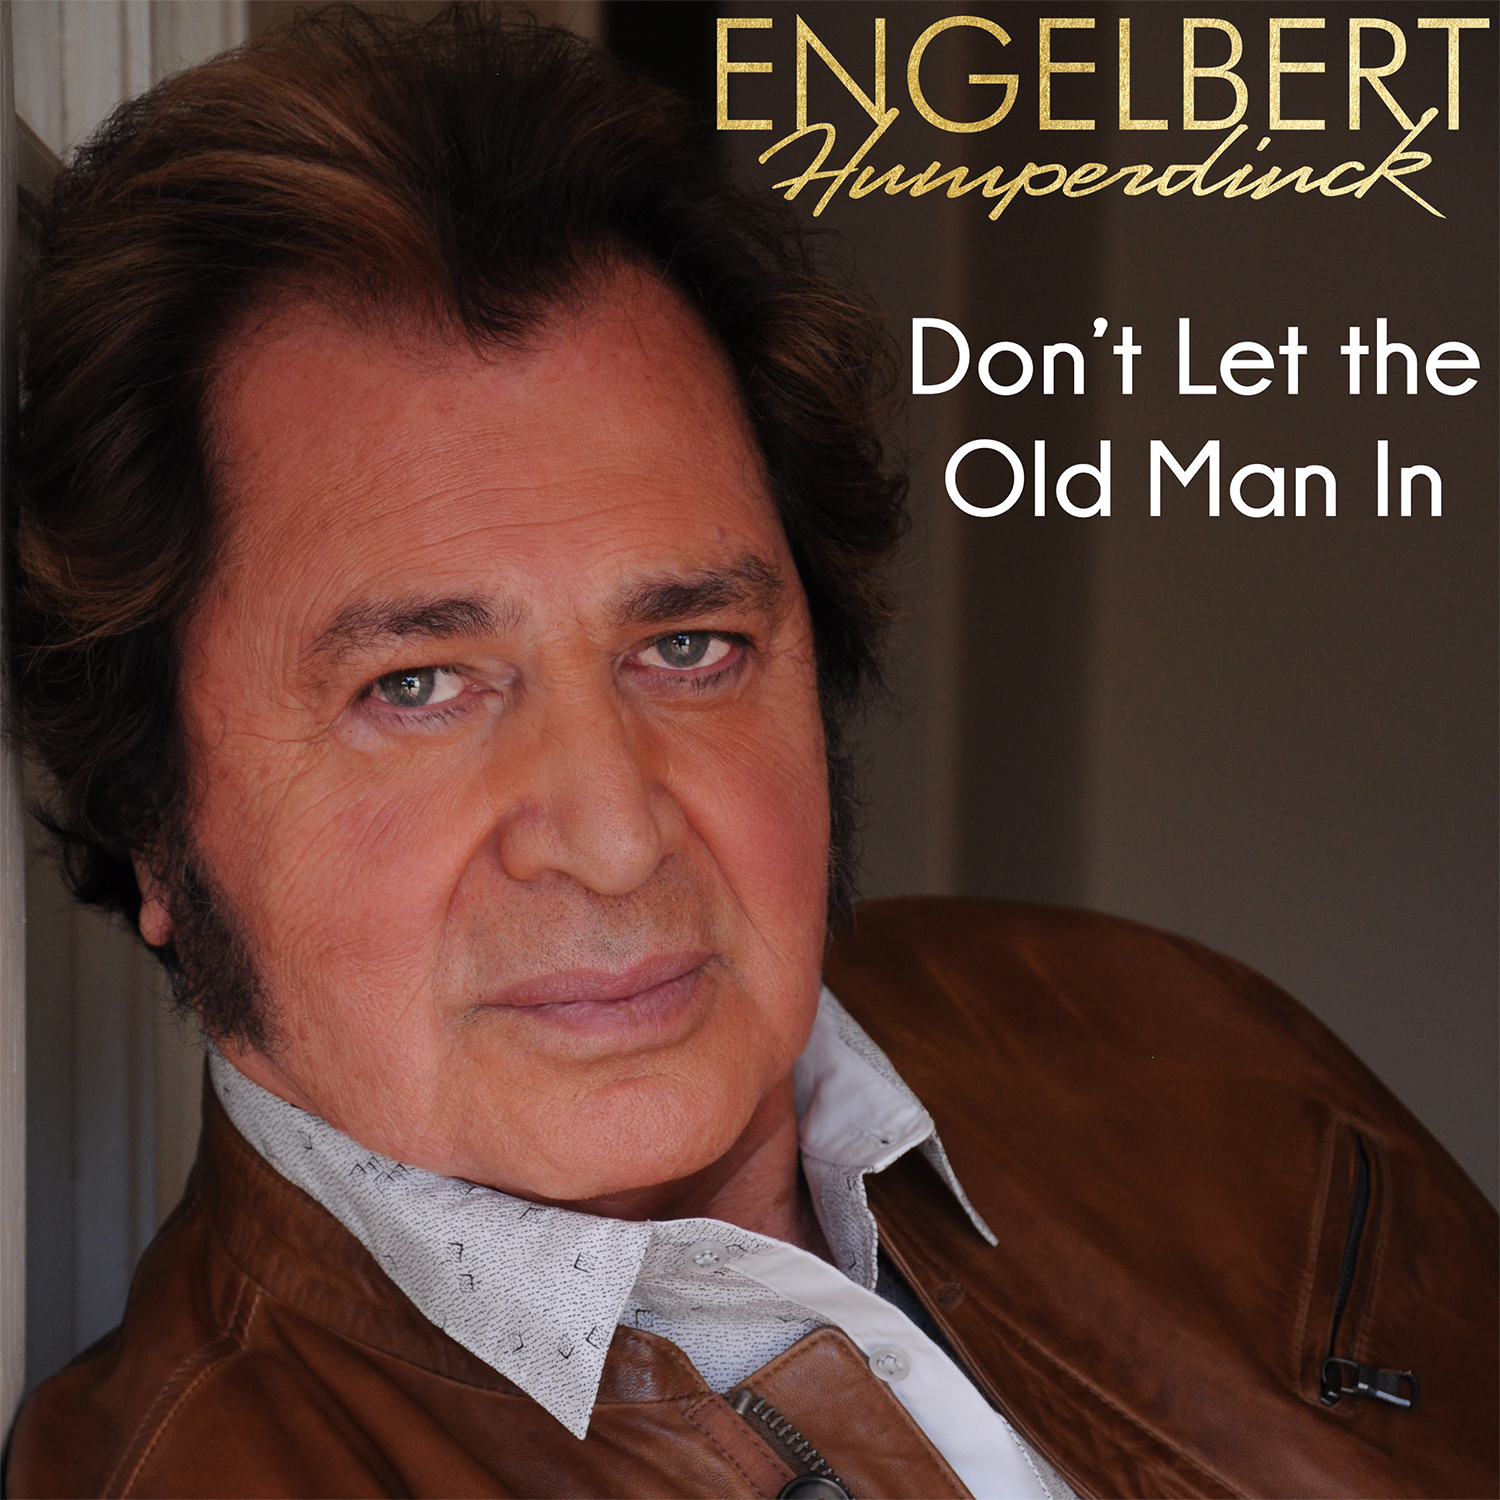 Engelbert Humperdinck - Don't Let the Old Man In - Cover Art